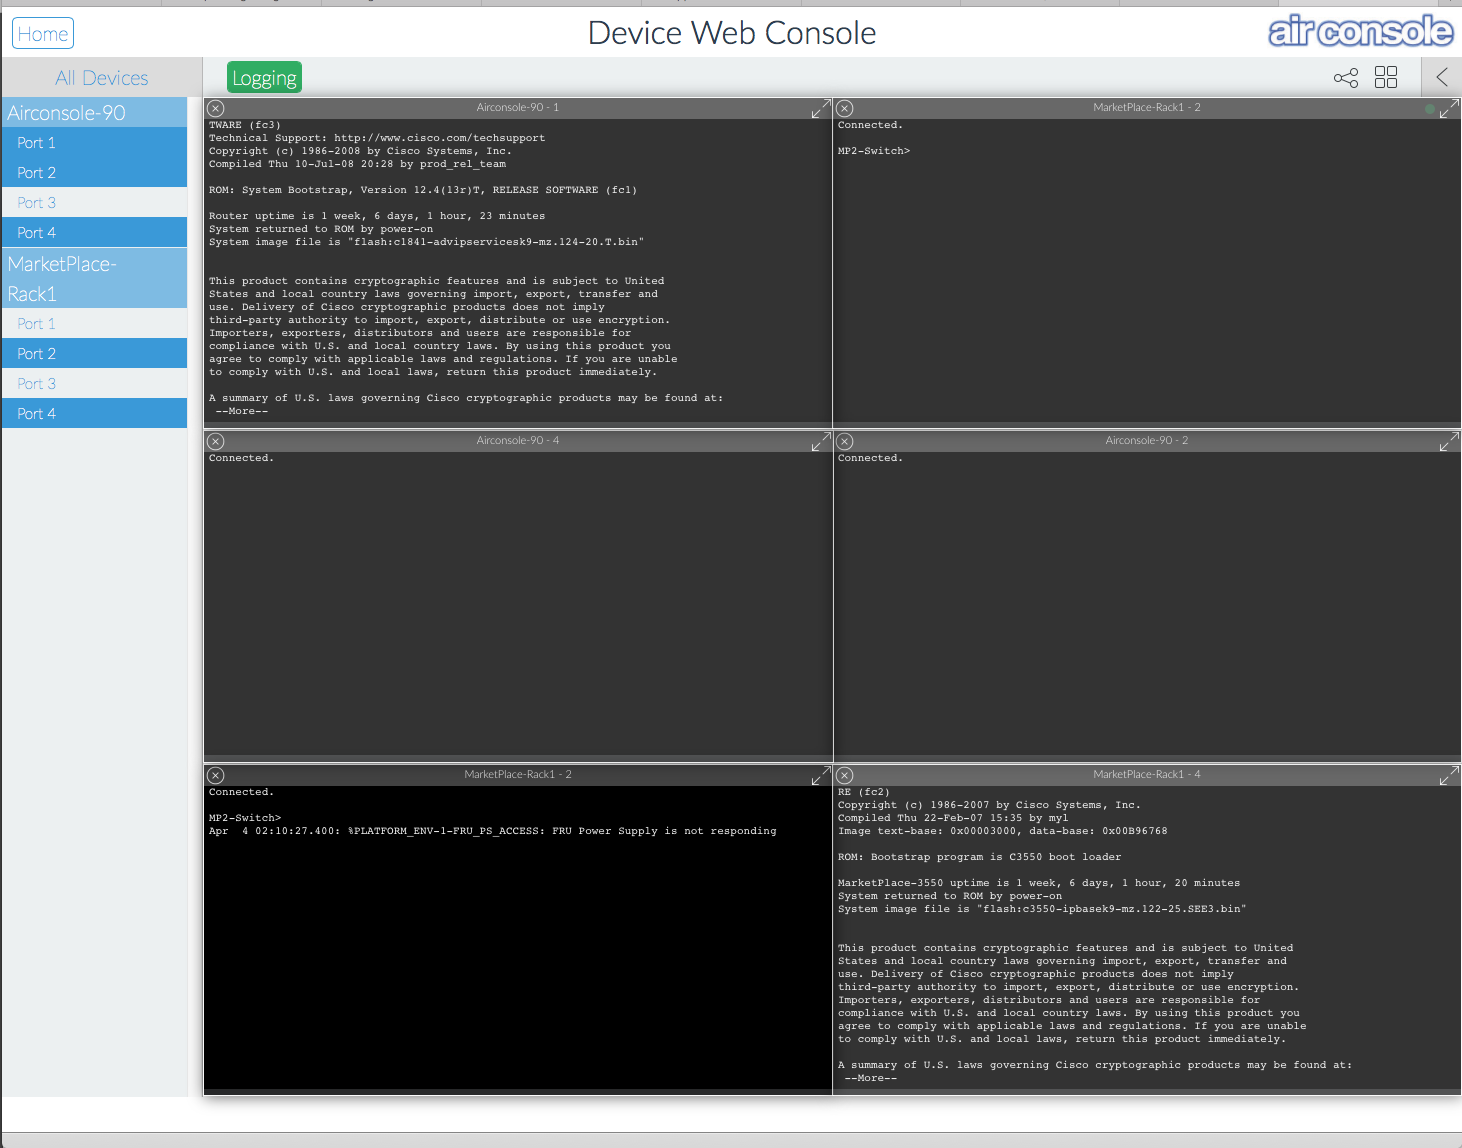 Airconsole Enterprise Server Web Terminal